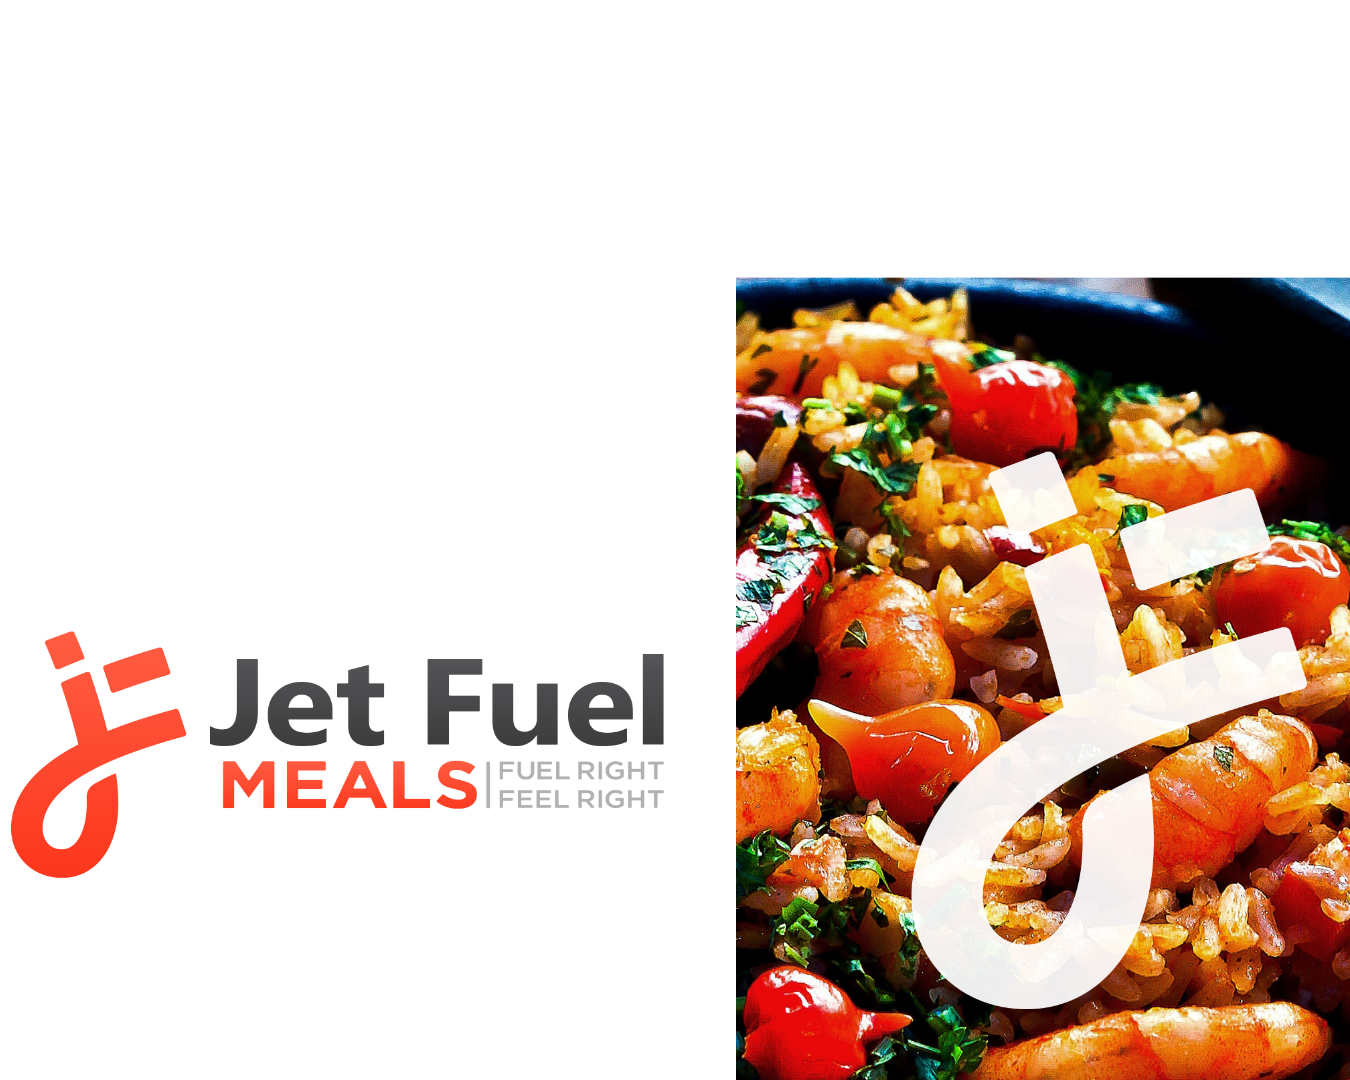 Jet Fuel Meals Offers